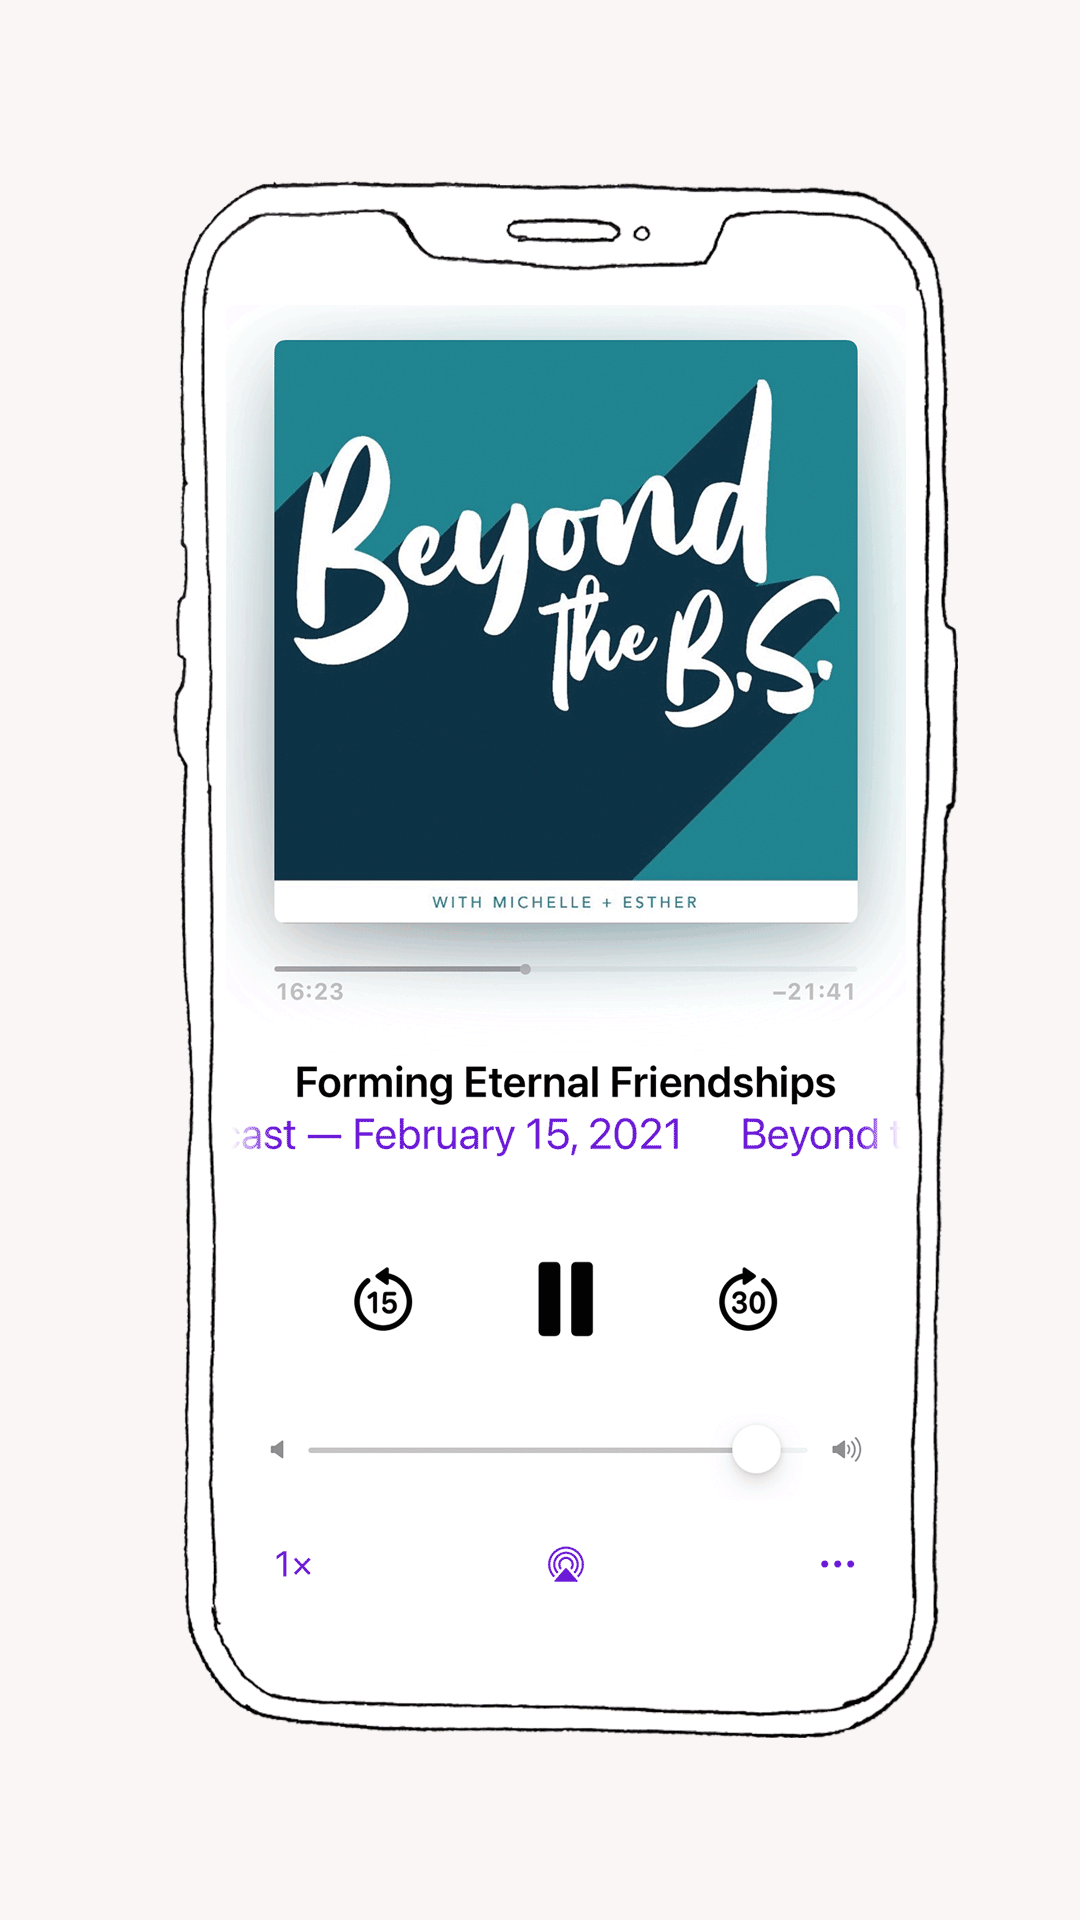 Beyond the BS